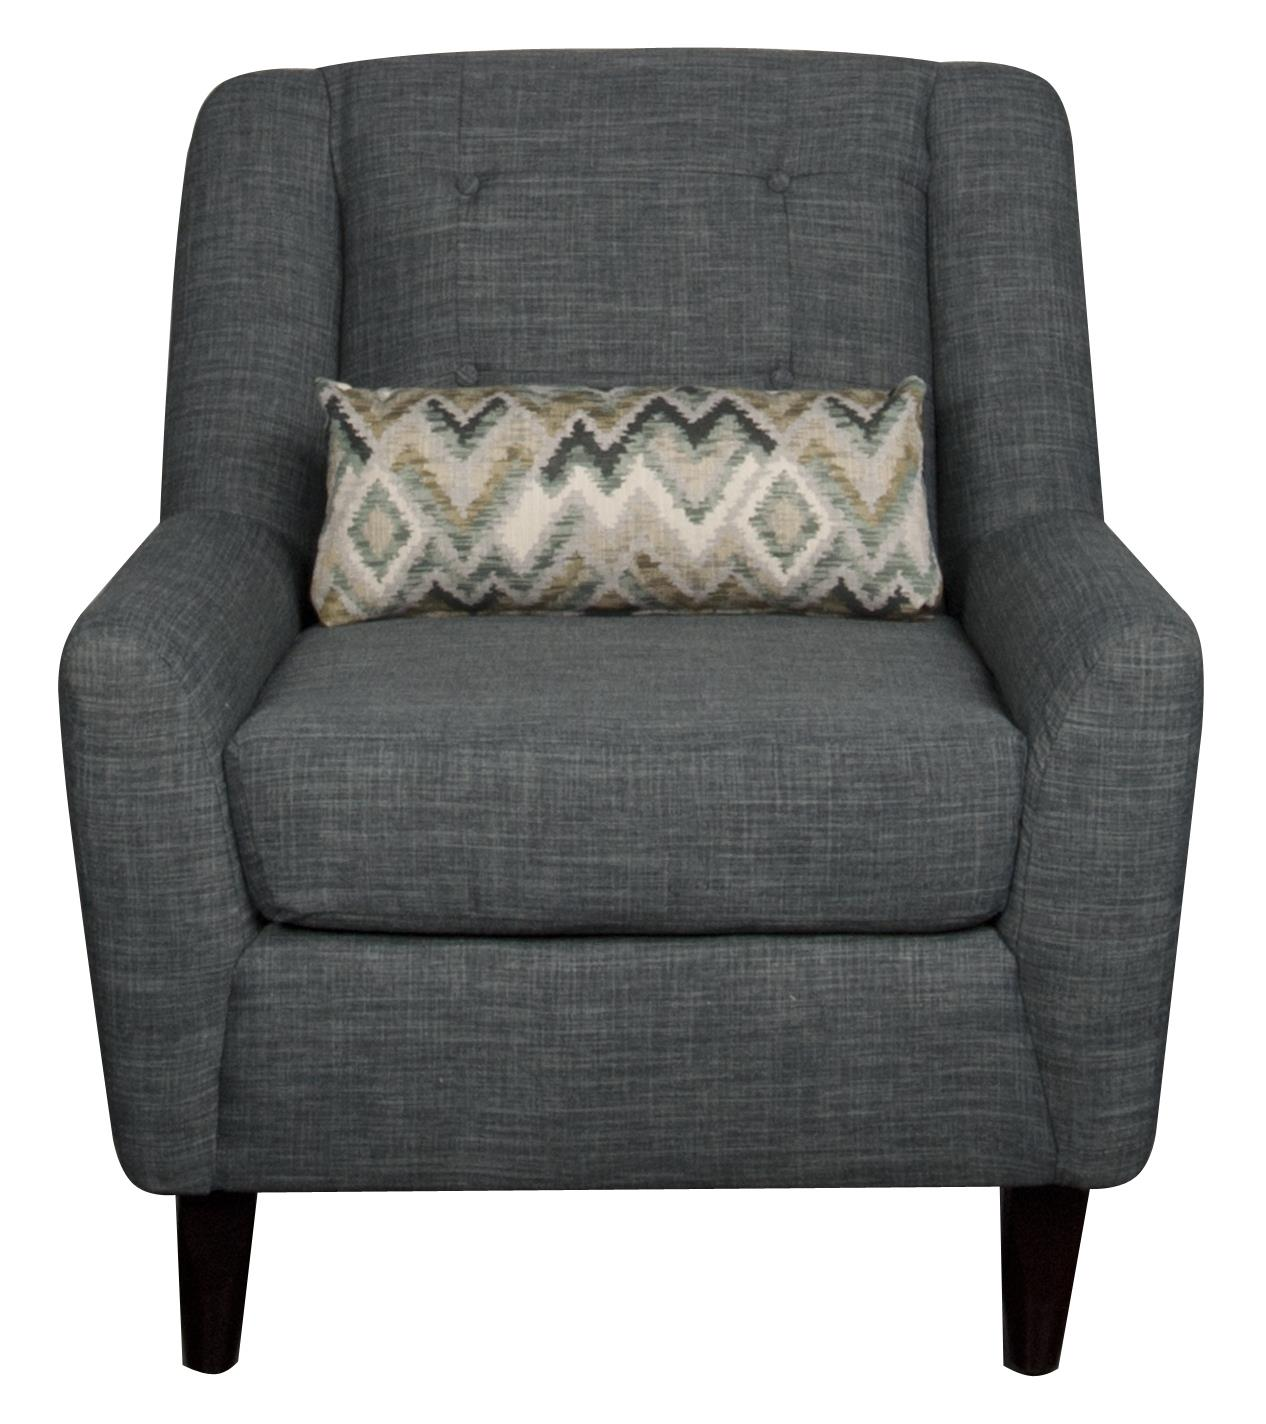 Elliston Place Skylar Skylar Occasional Chair - Item Number: 830257264